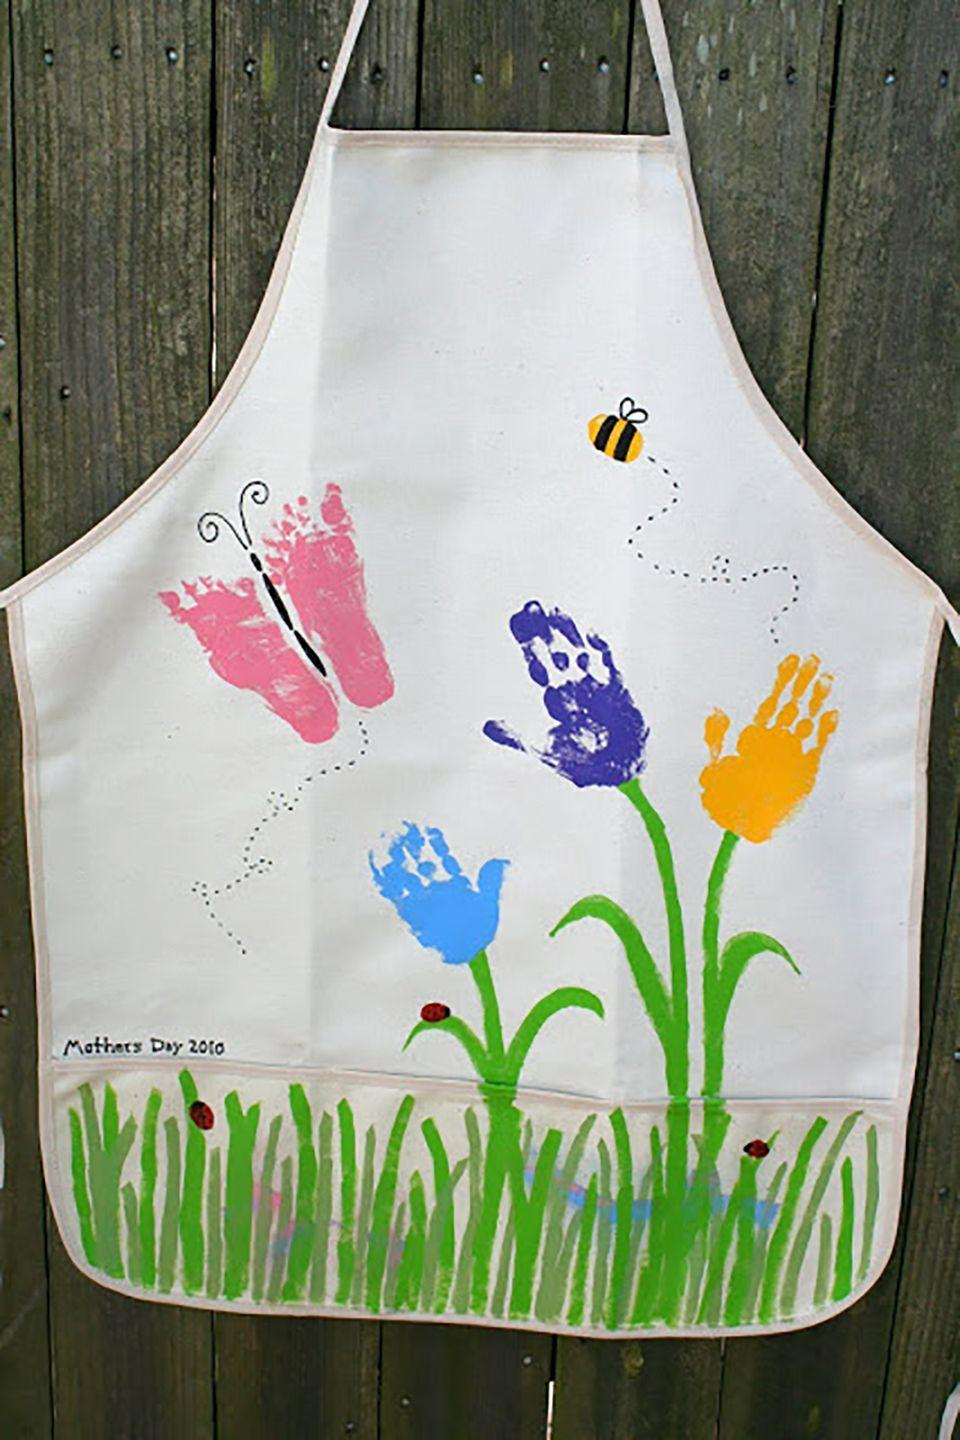 """<p>Mom will love wearing this precious apron when she heads out into her garden this spring.</p><p><strong>Get the tutorial at <a href=""""http://littlepageturners.blogspot.com/2010/05/mothers-day-handprint-and-such-apron.html"""" rel=""""nofollow noopener"""" target=""""_blank"""" data-ylk=""""slk:Little Page Turners"""" class=""""link rapid-noclick-resp"""">Little Page Turners</a>. </strong></p><p><strong>What you'll need: </strong><em>apron ($10 for 3-pack, </em><em><a href=""""https://www.walmart.com/ip/Next-Style-Canvas-Aprons-3-Pack-White/20711685"""" rel=""""nofollow noopener"""" target=""""_blank"""" data-ylk=""""slk:walmart.com"""" class=""""link rapid-noclick-resp"""">walmart.com</a>)</em></p>"""